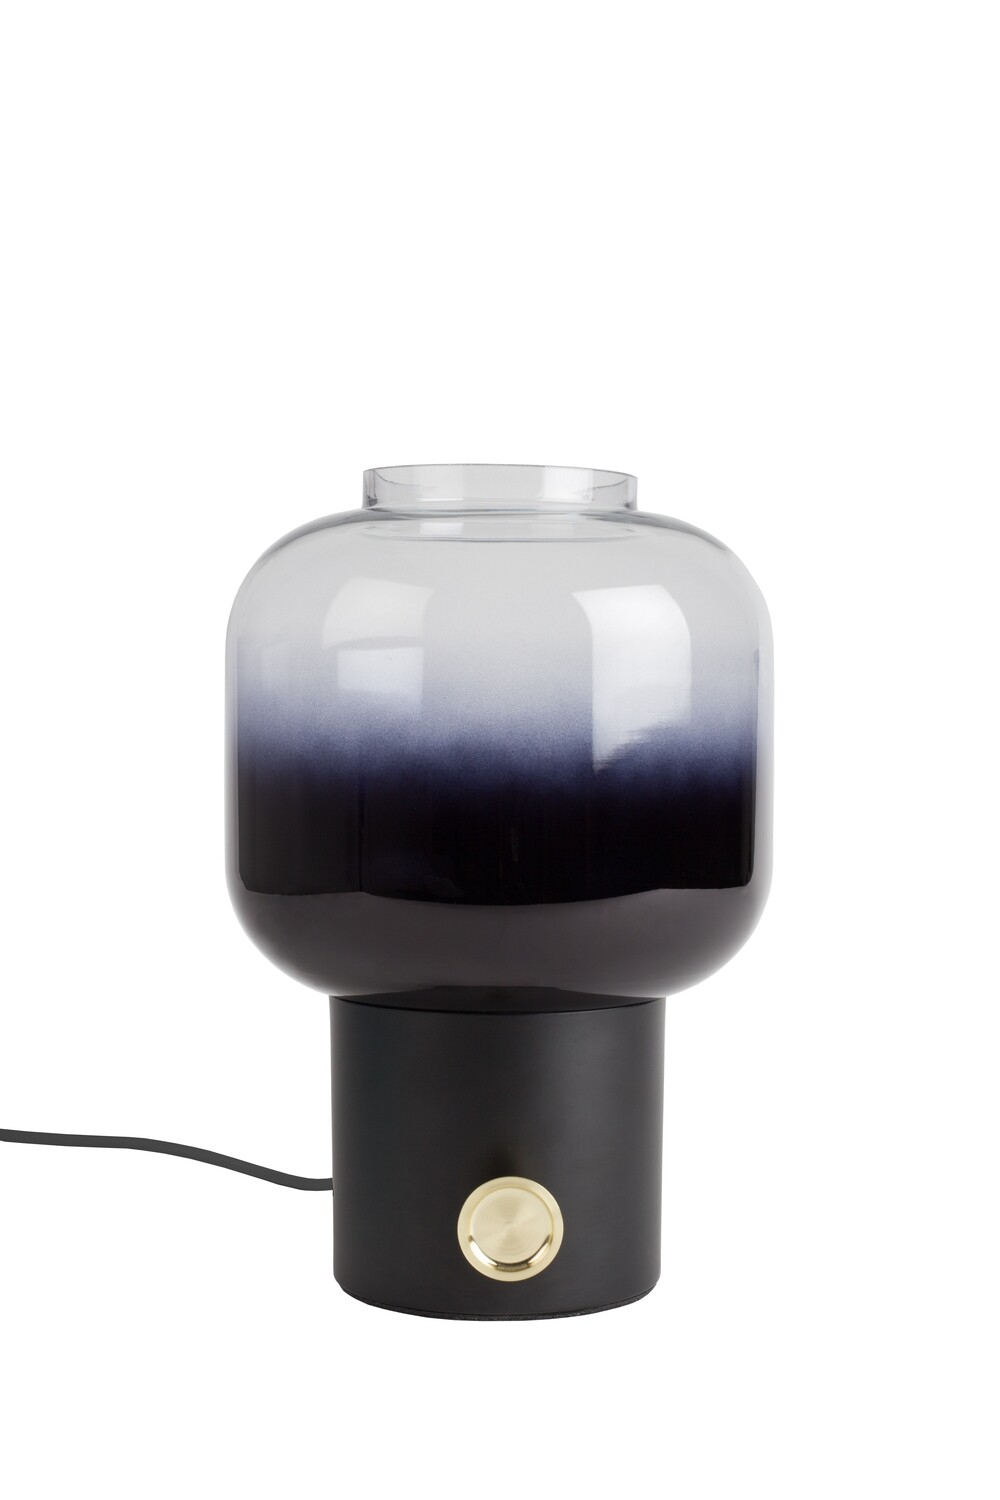 Moody table lamp